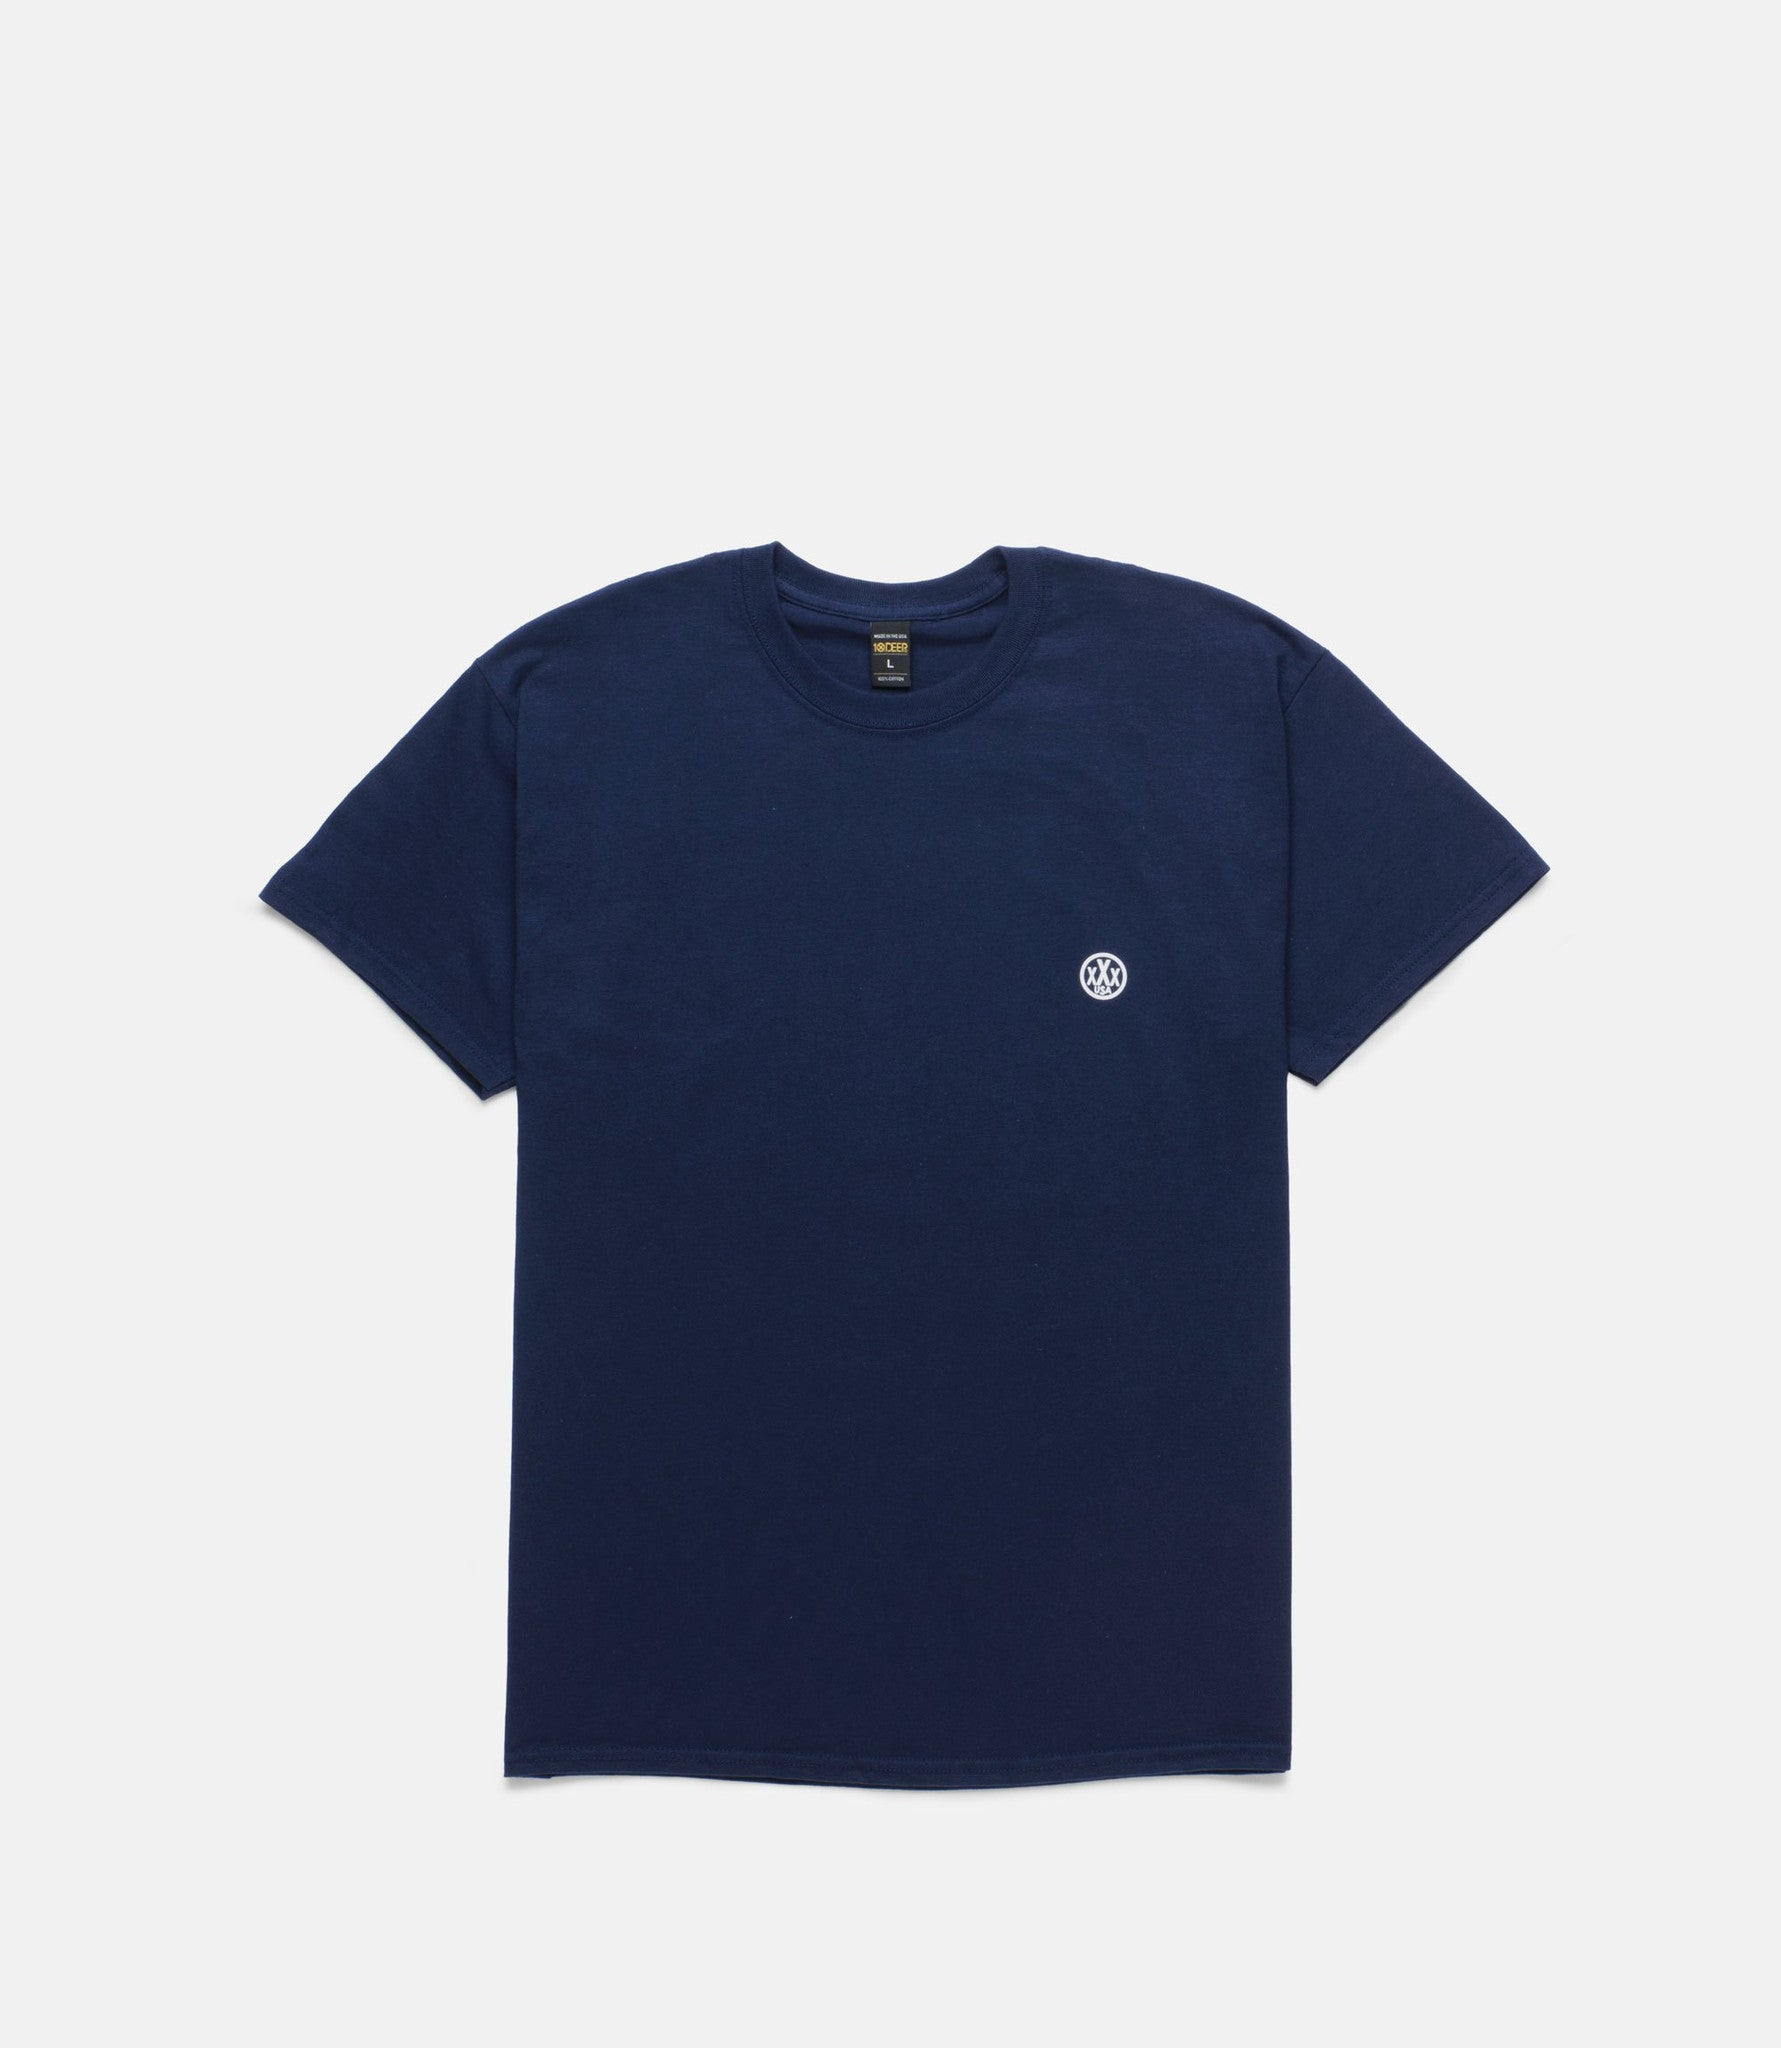 10Deep - Namsaknoi Men's Tee, Navy - The Giant Peach - 2